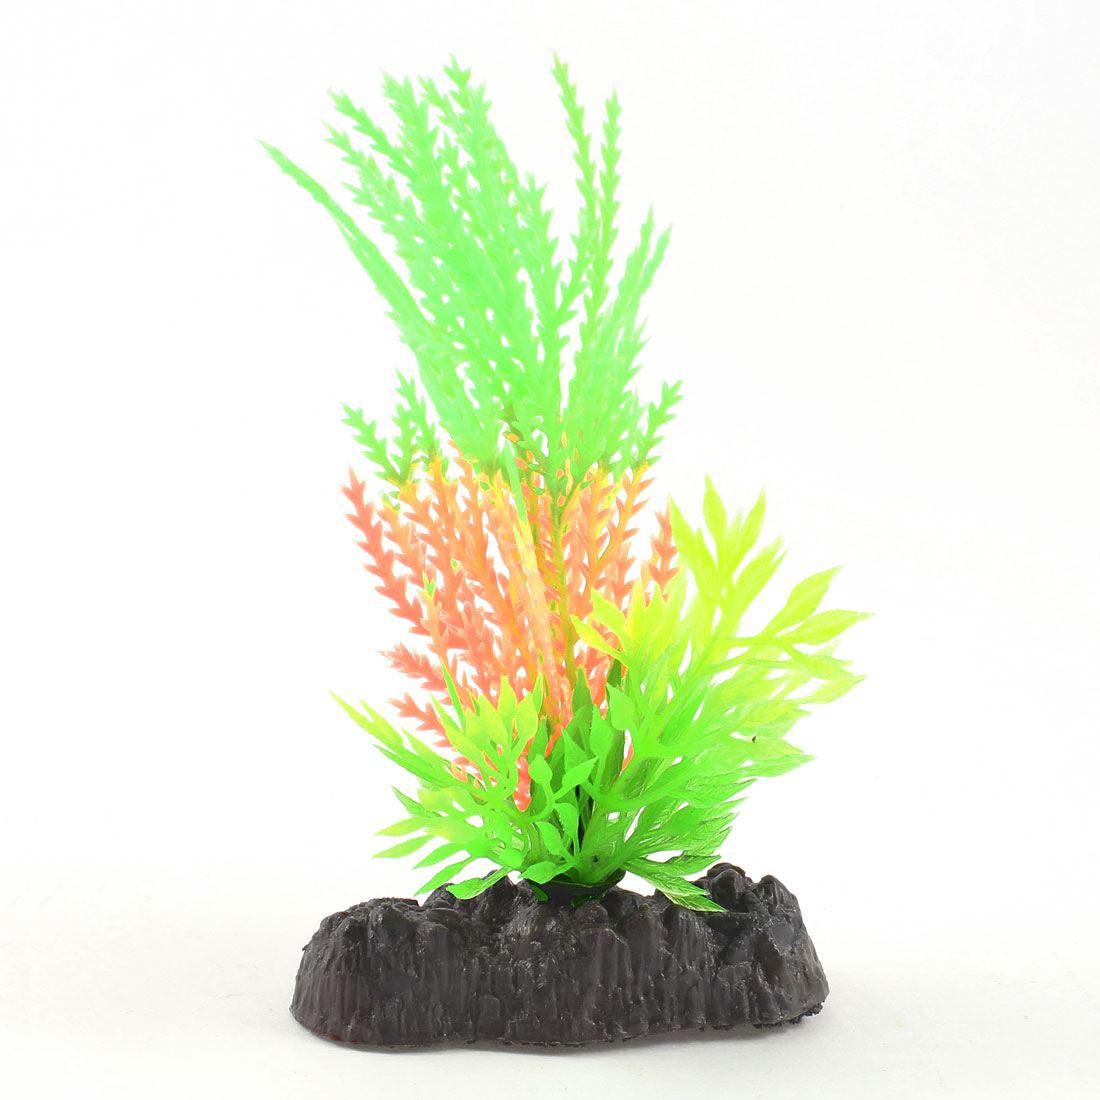 Fish Tank Decor Green Light Orange Plastic Glow Light Water Plant w Stone Base